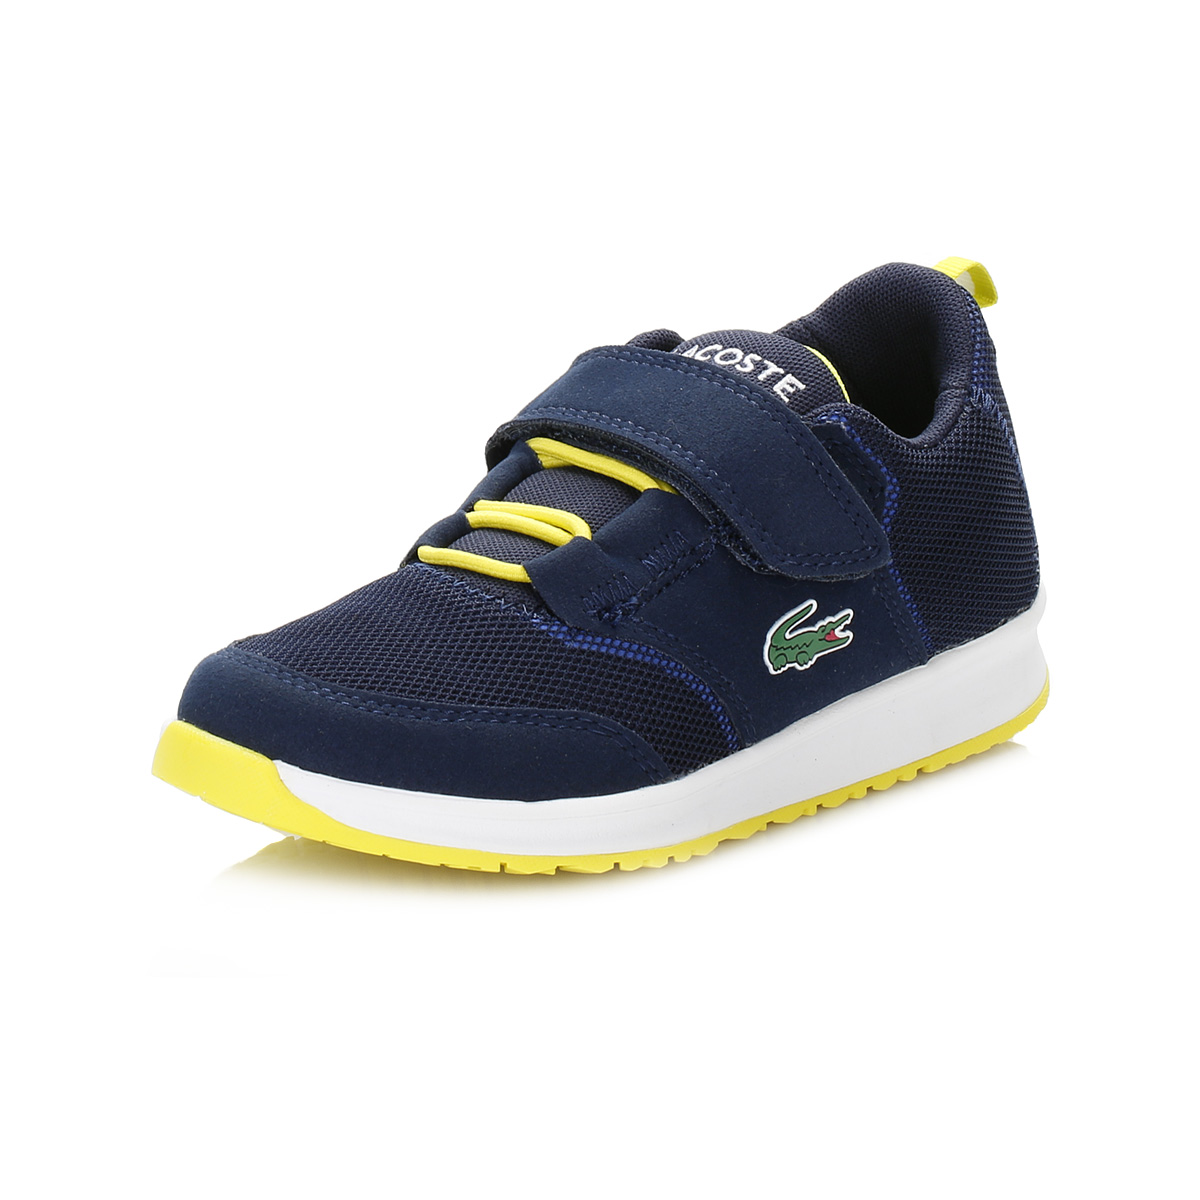 Navy blue nike shoes for kids nike shoes shop online for nike shoes for men, women and kids class a air jordan for sale online at. Navy blue nike shoes for kids select from the wide air jordan 1 navy gray range of nike shoes from nike online store.